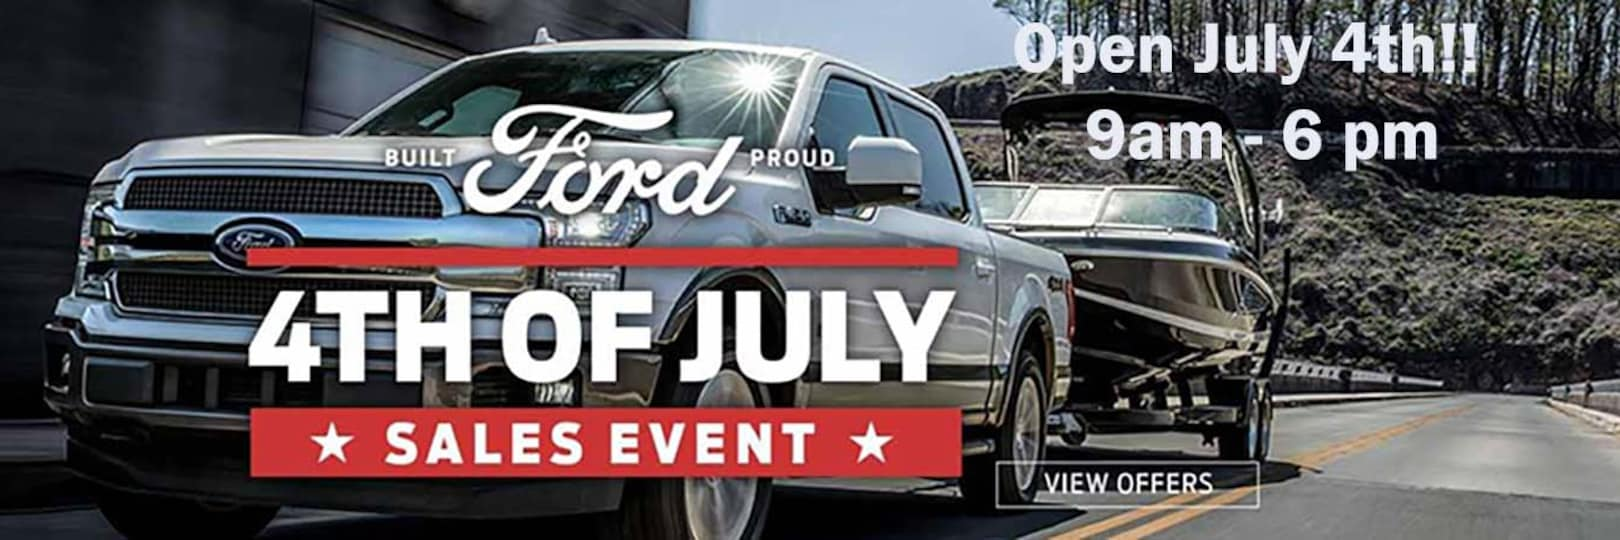 Gullo Ford Conroe Texas >> Gullo Ford Of Conroe New And Used Ford Dealer Near Houston Tx